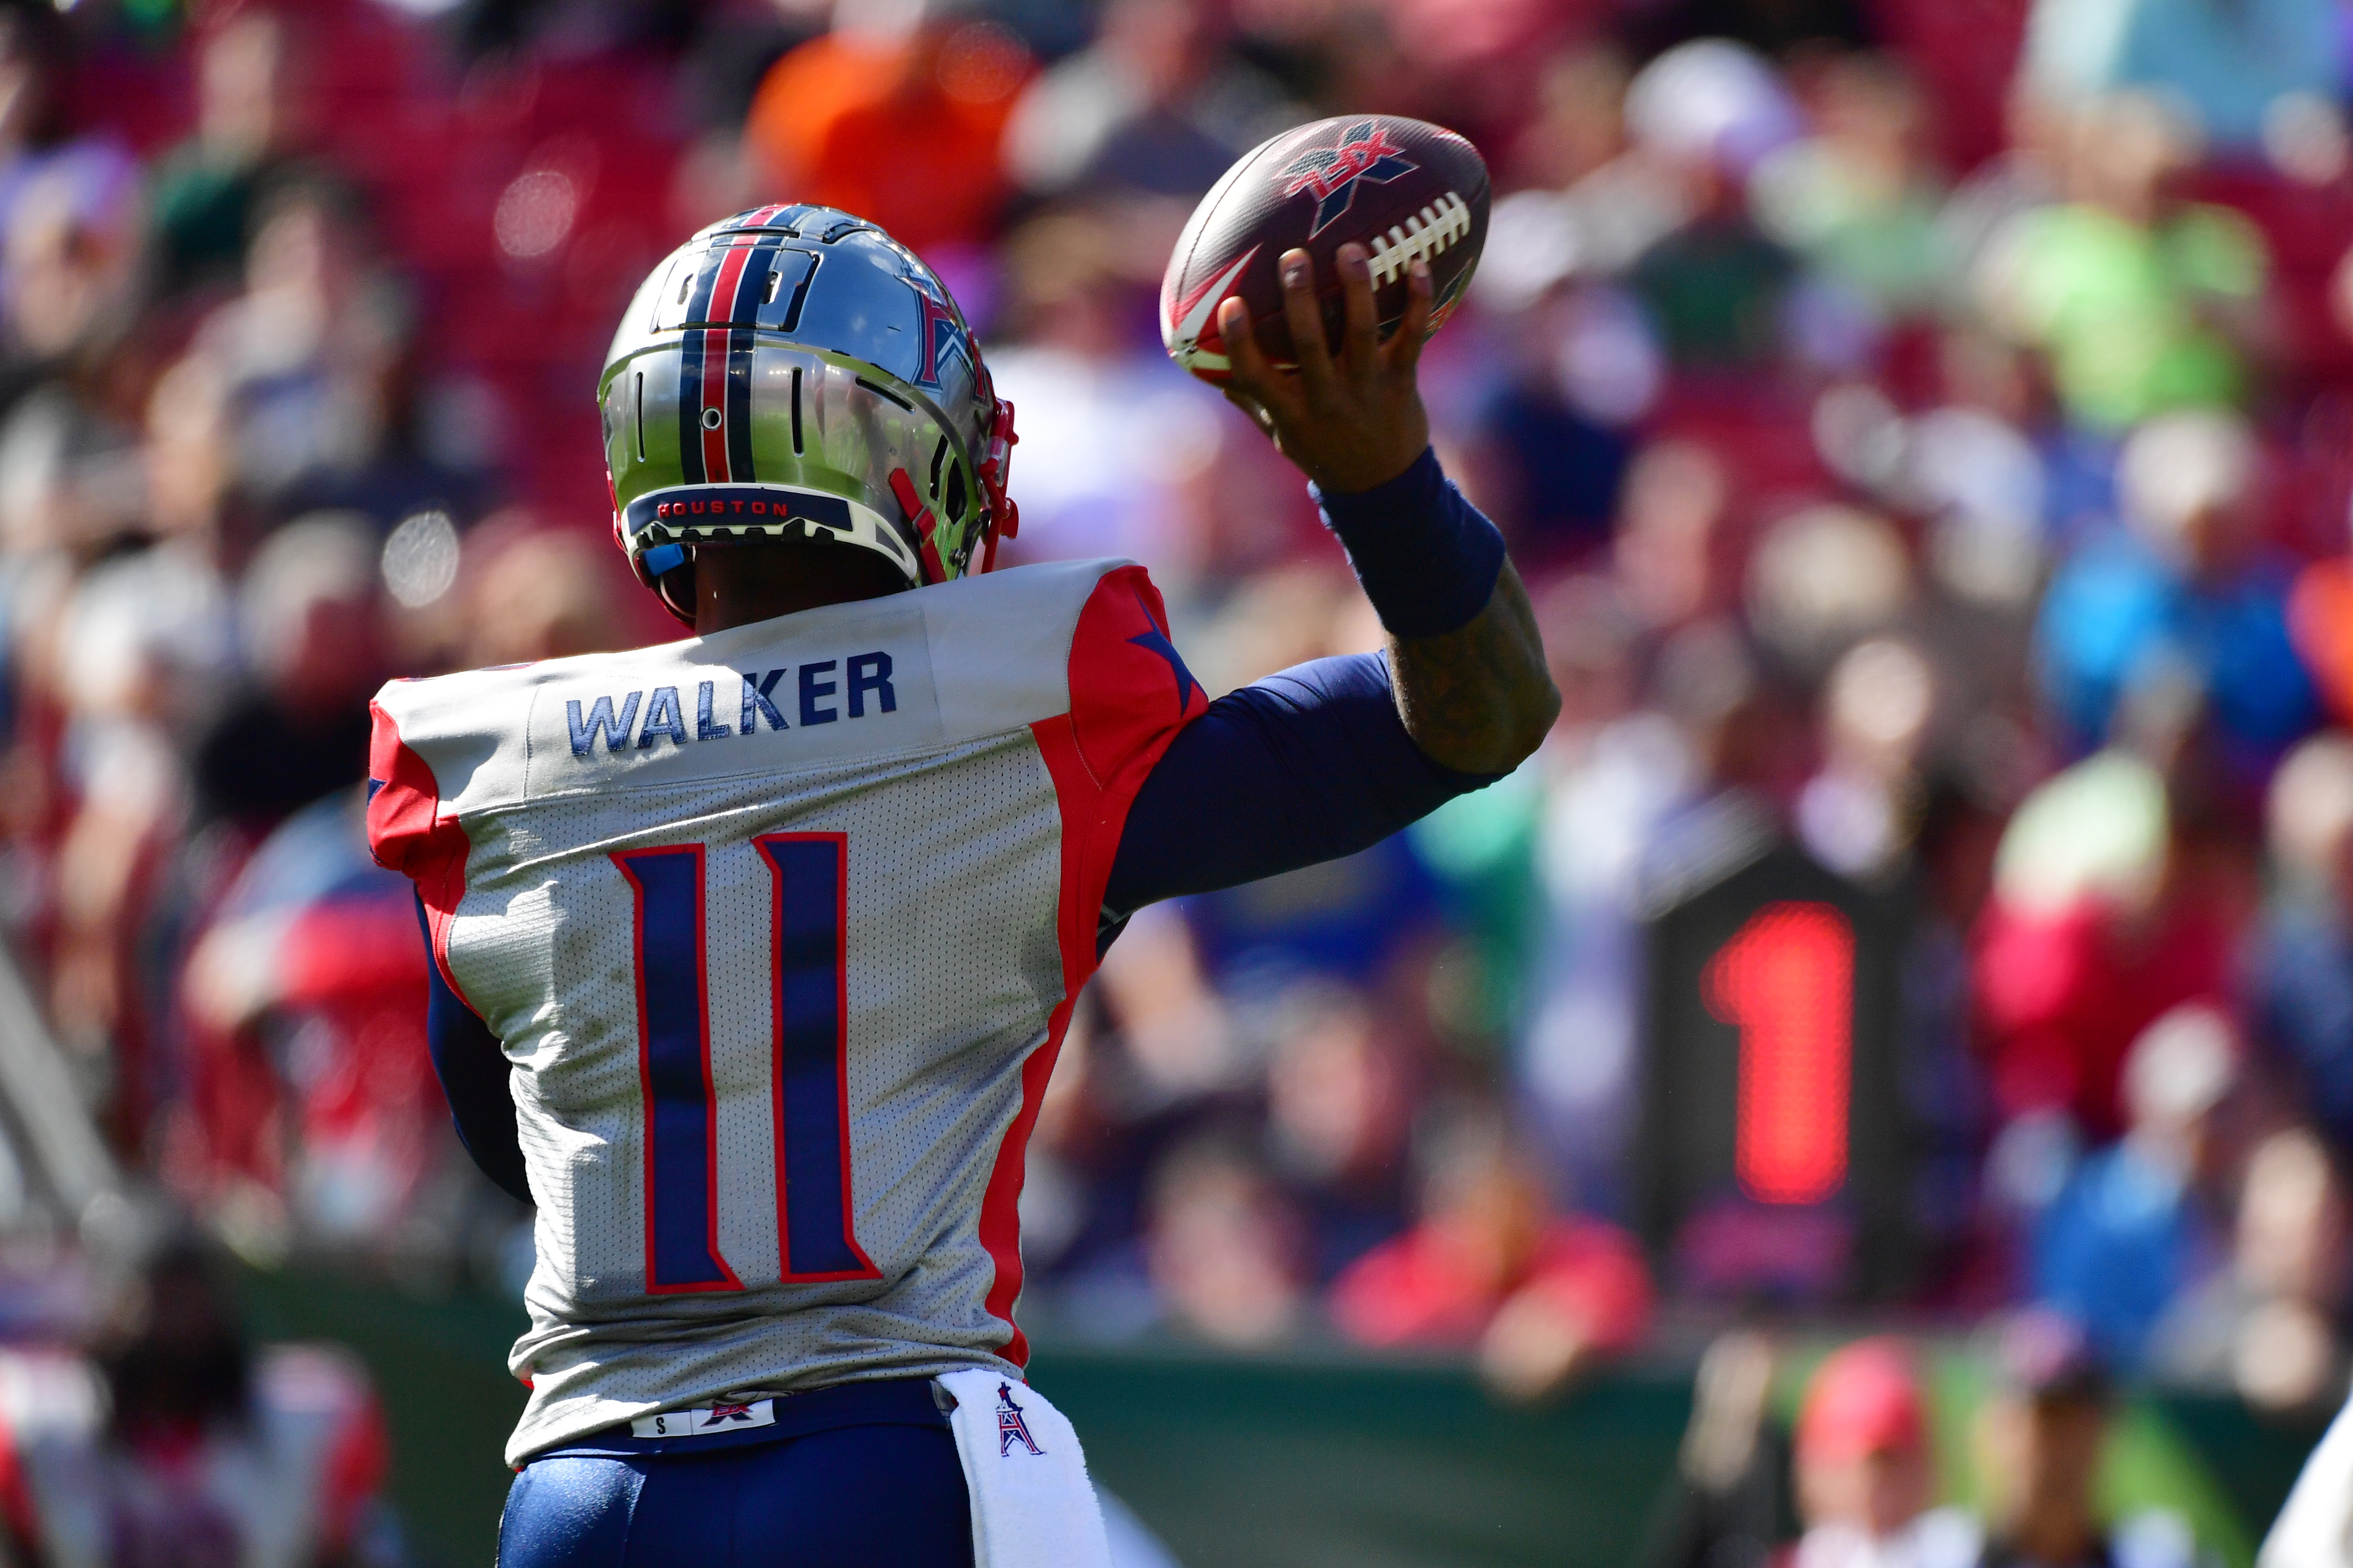 P.J. Walker #11 of the Houston Roughnecks throws a pass during the second quarter of a football game against the Tampa Bay Vipers at Raymond James Stadium on February 22, 2020 in Tampa, Florida.